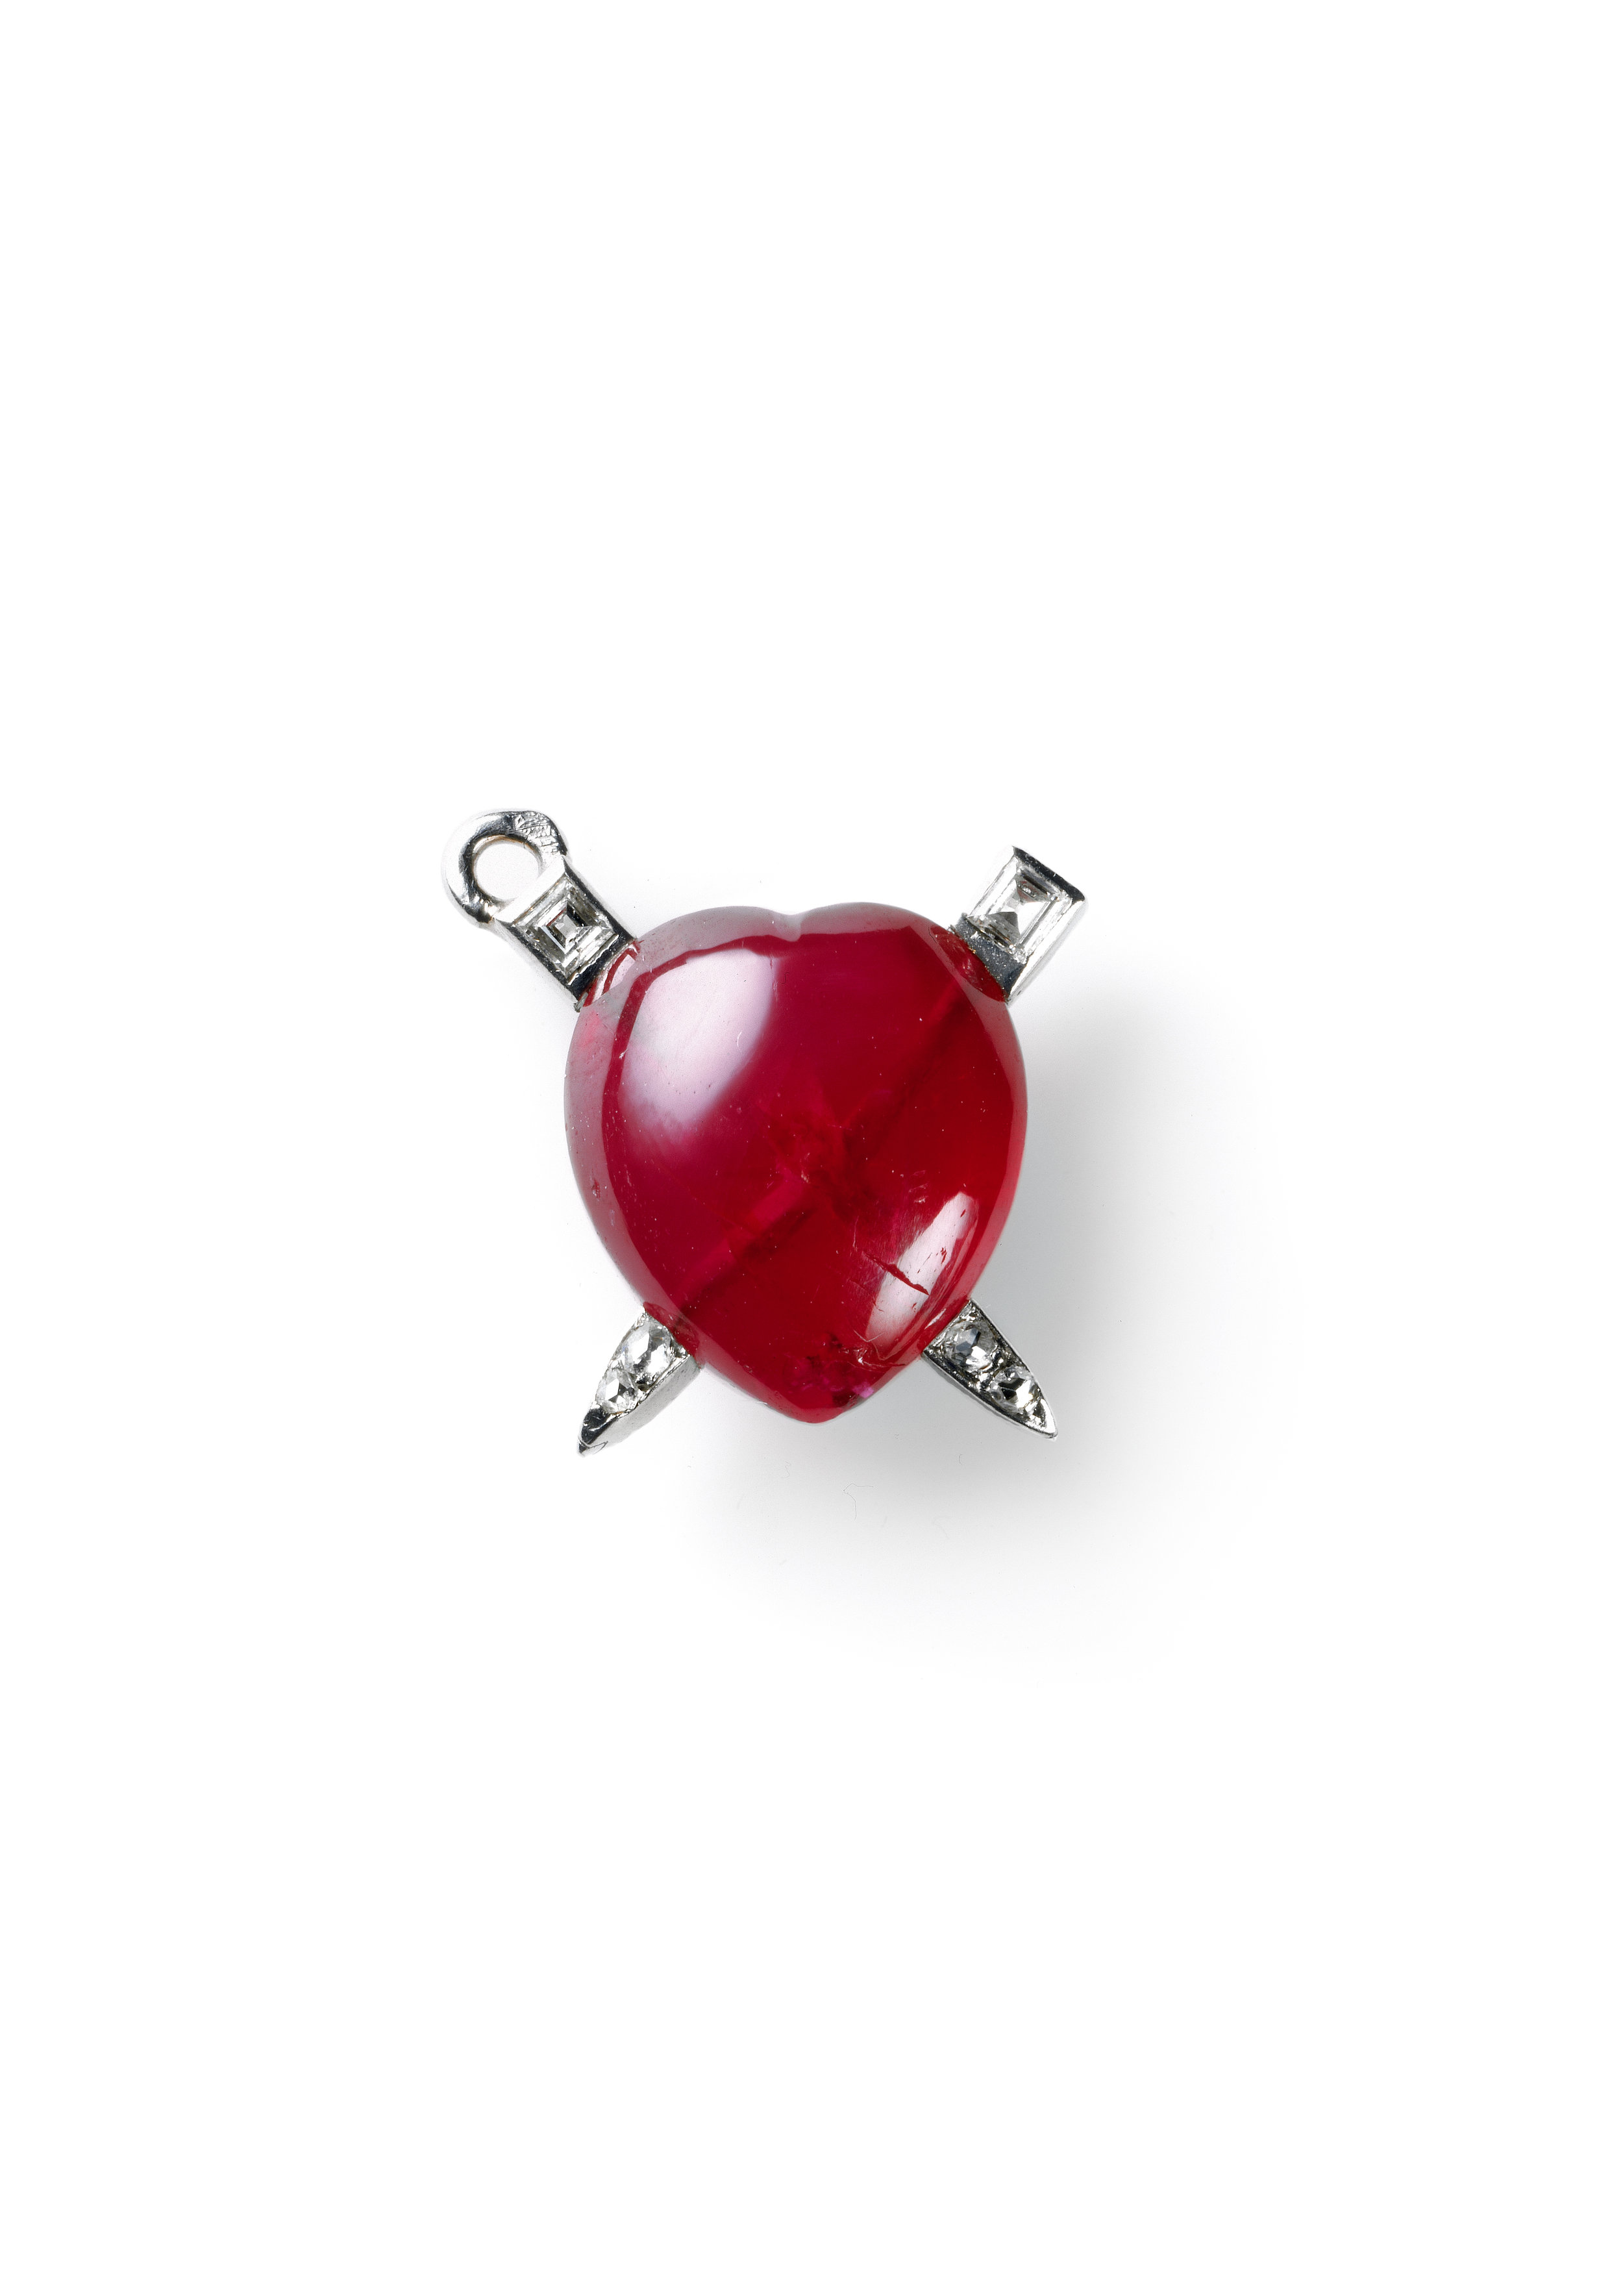 The Cartier Breloque Coeur made in 1929 from a heart-shaped cabochon ruby crossed through by platinum and diamond studs_Photo by Nick Welsh_© Cartier_from_RUBY_published 2017.jpg